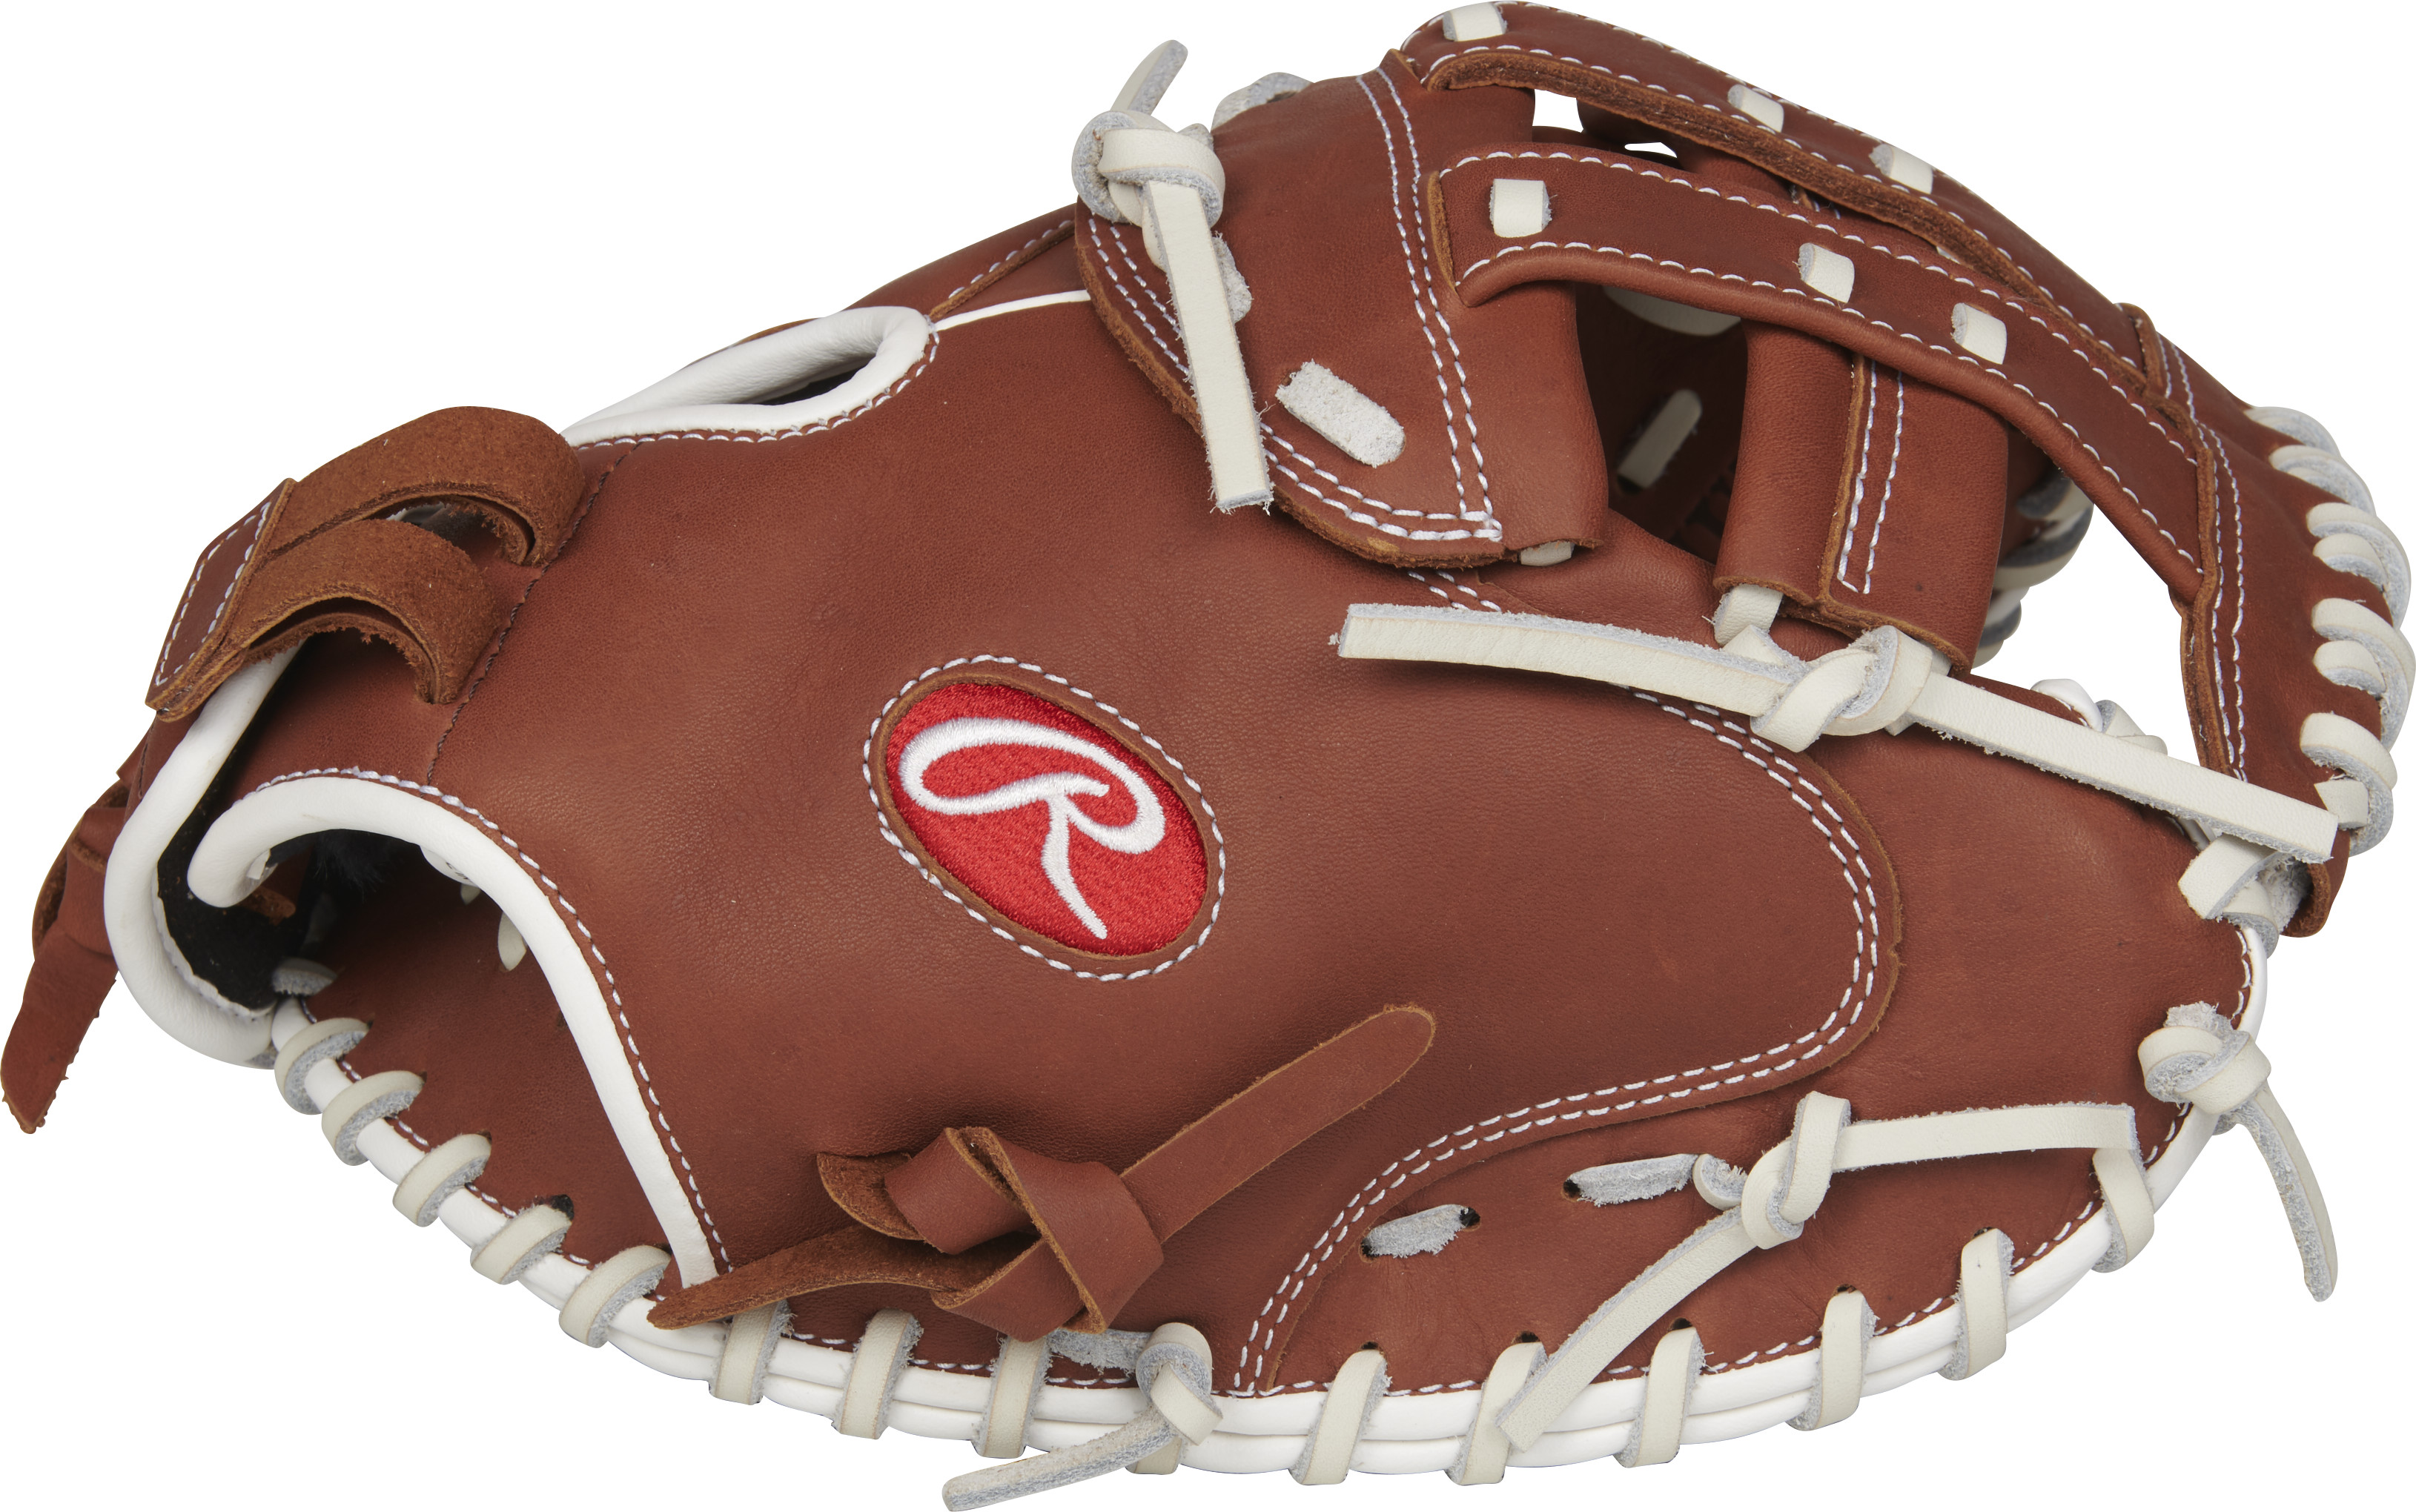 http://www.bestbatdeals.com/images/gloves/rawlings/R9SBCM33-24DB-3.jpg